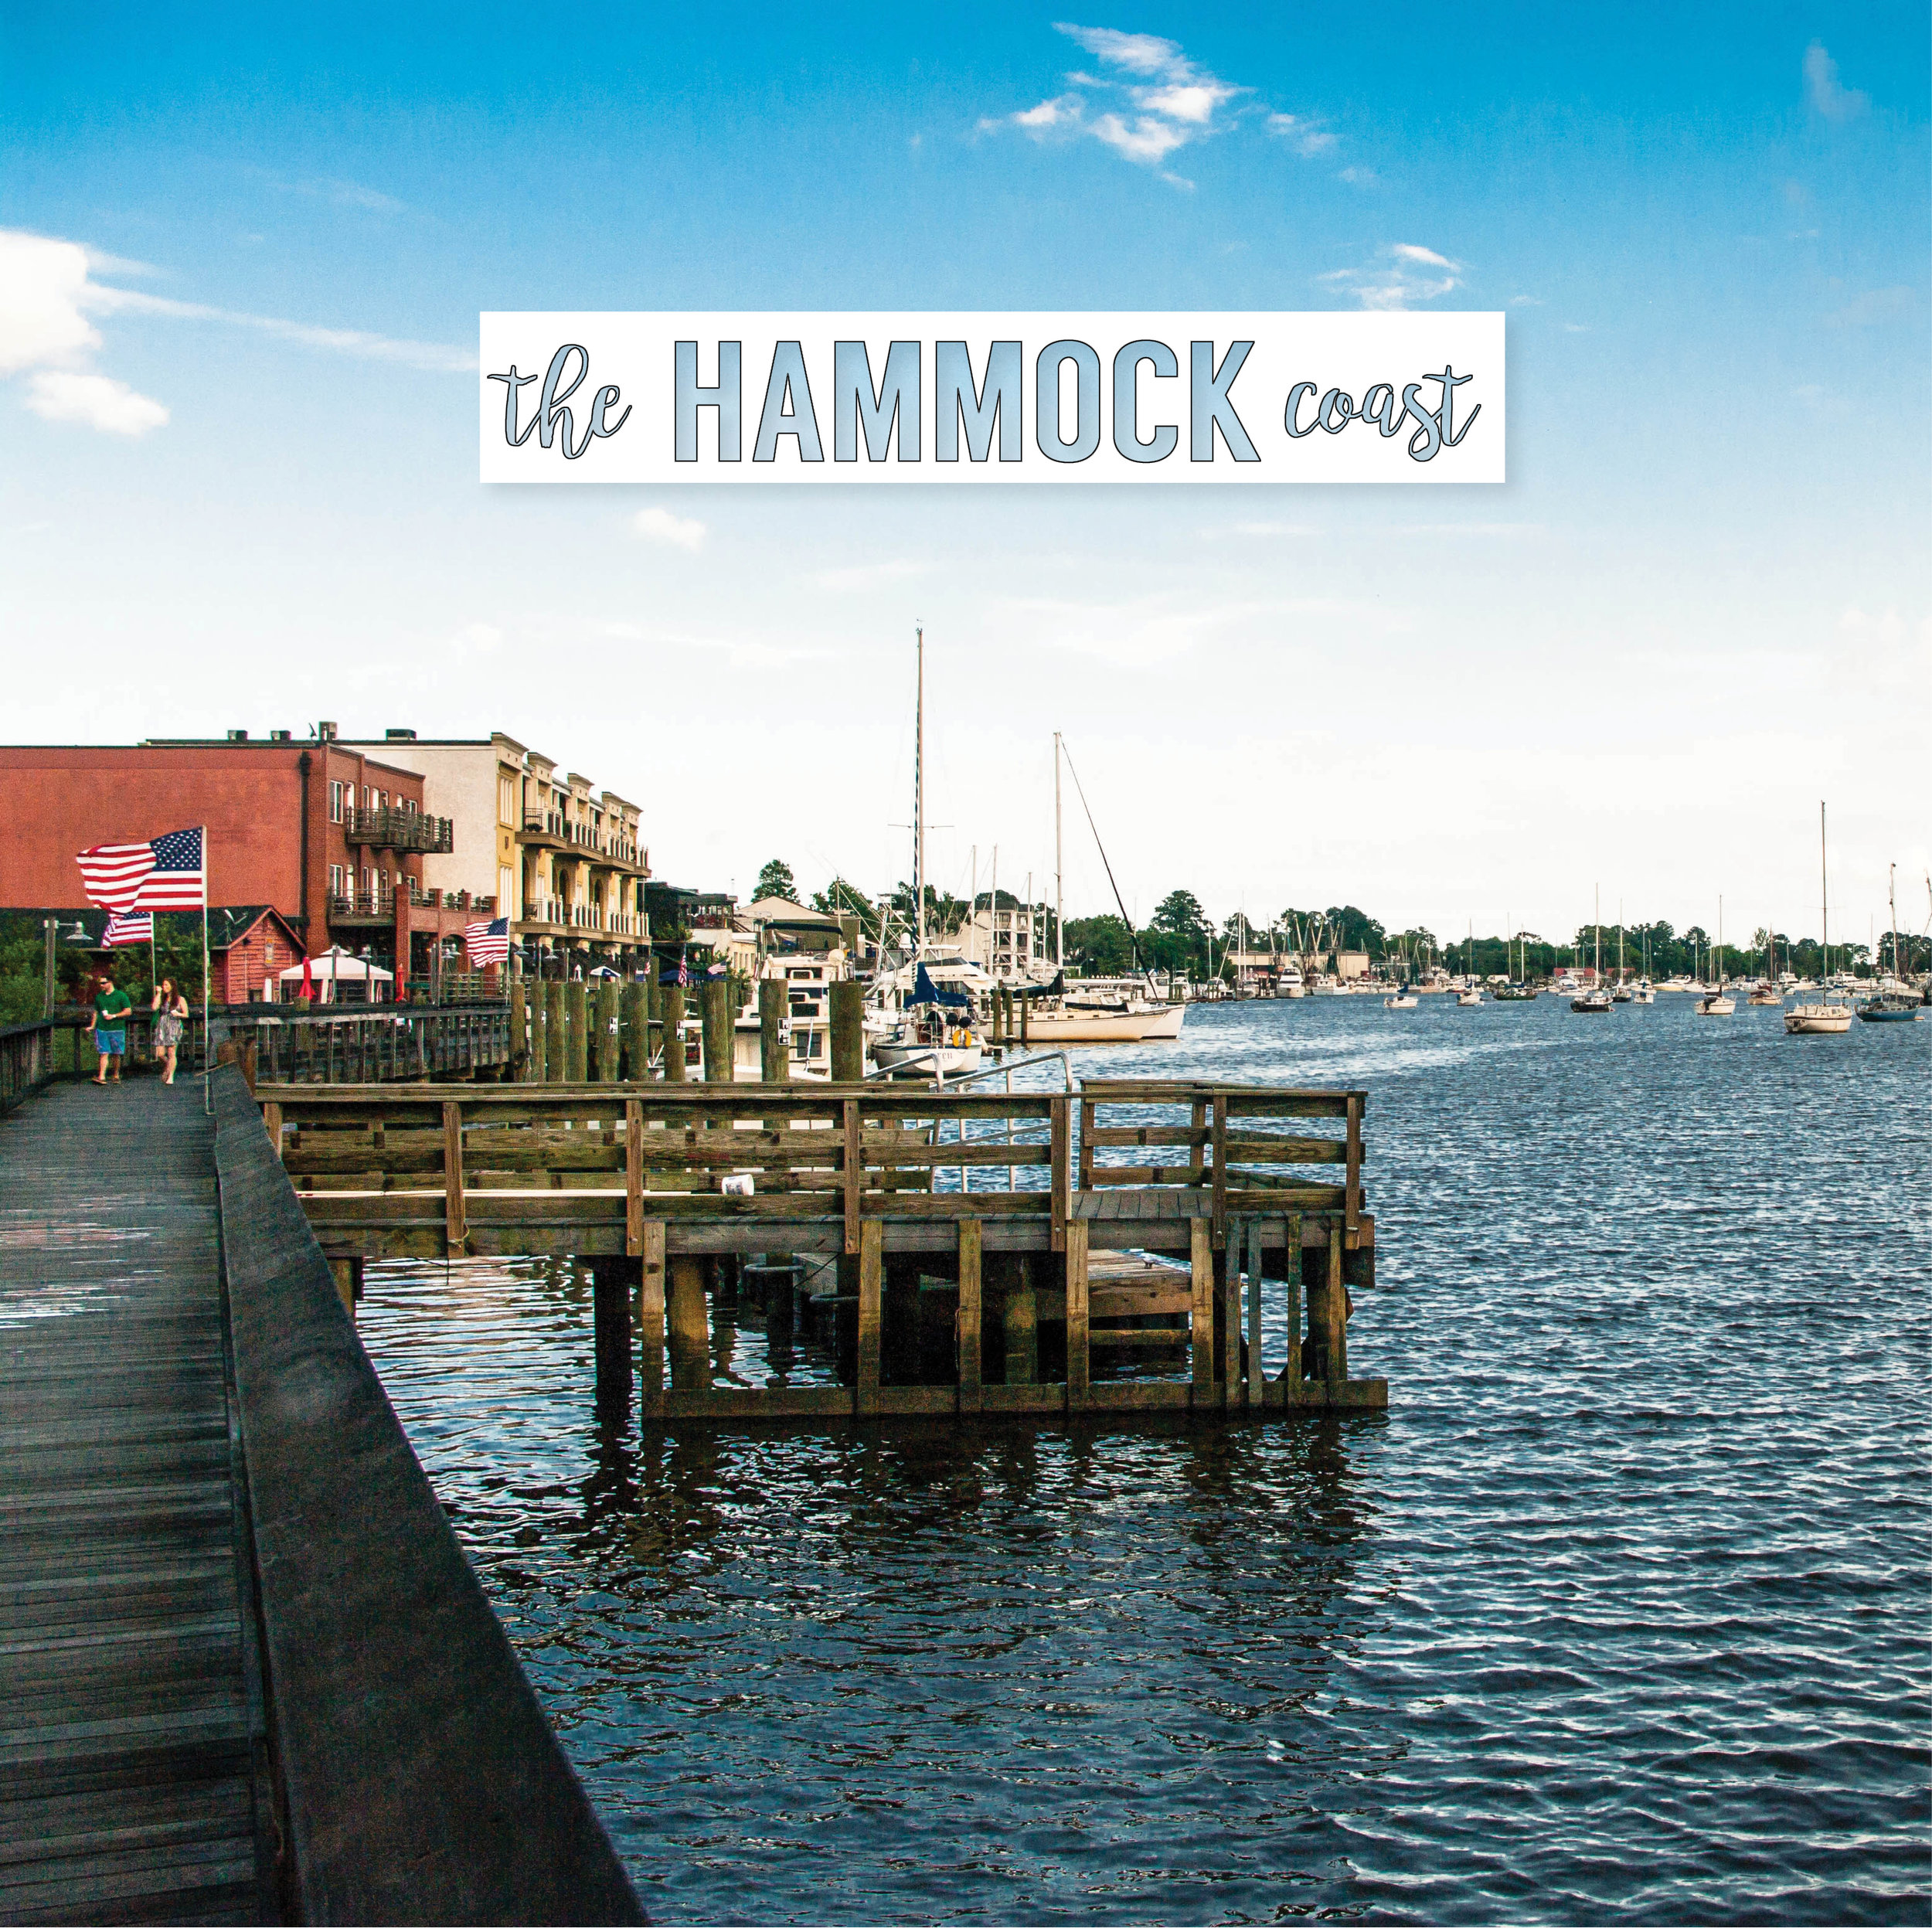 The Hammock Coast